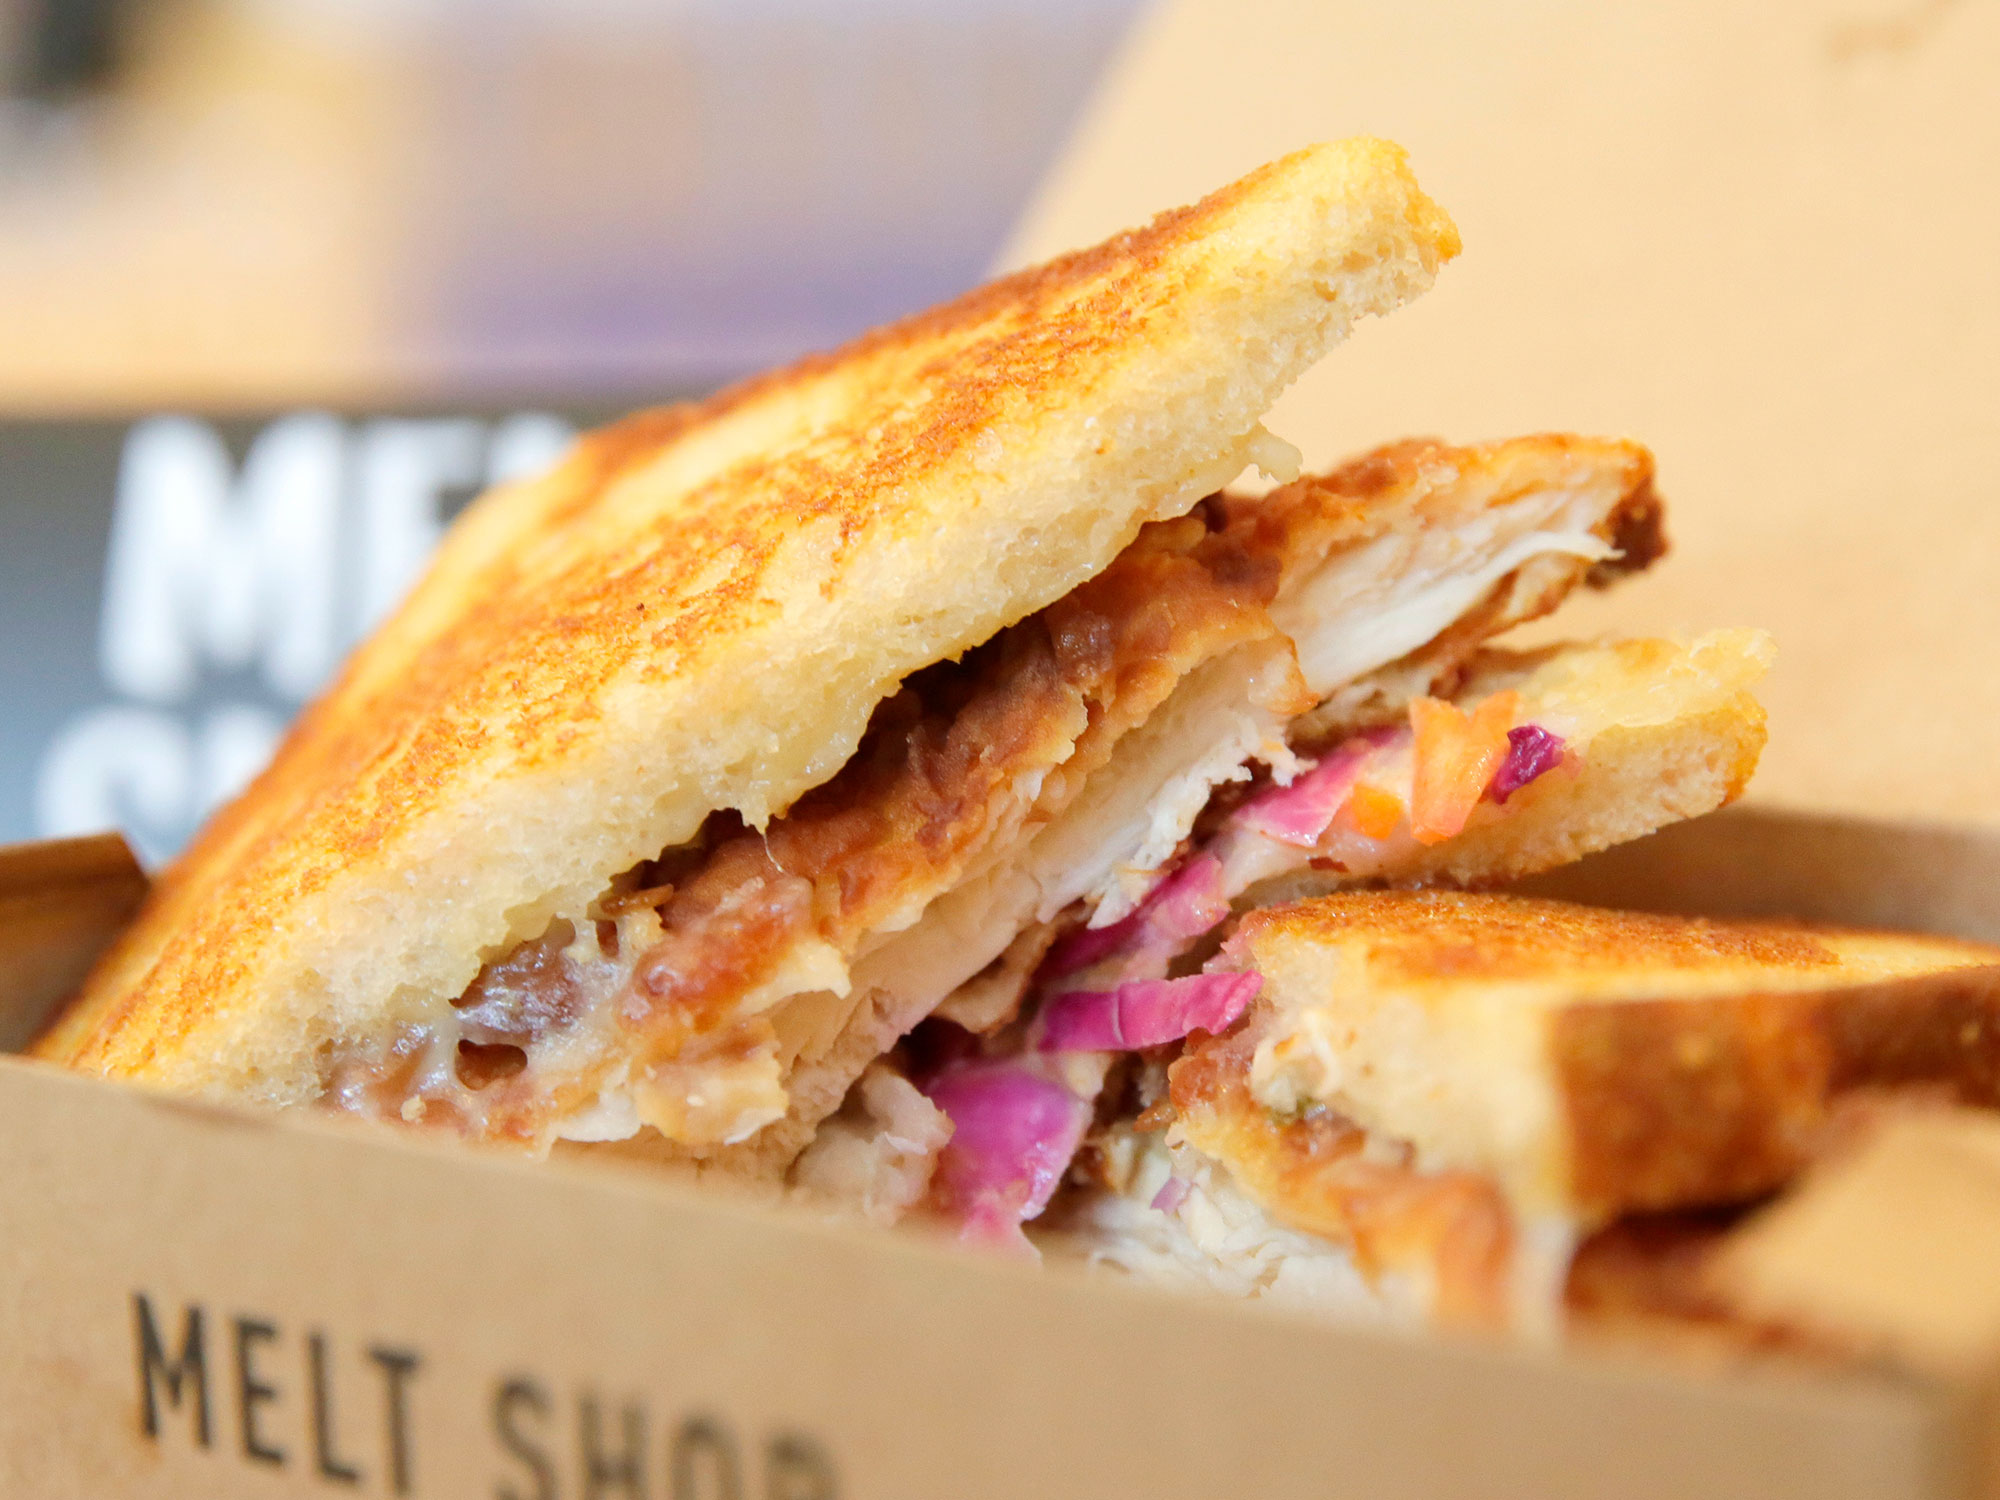 One of the grilled cheese sandwiches from Melt Shop.